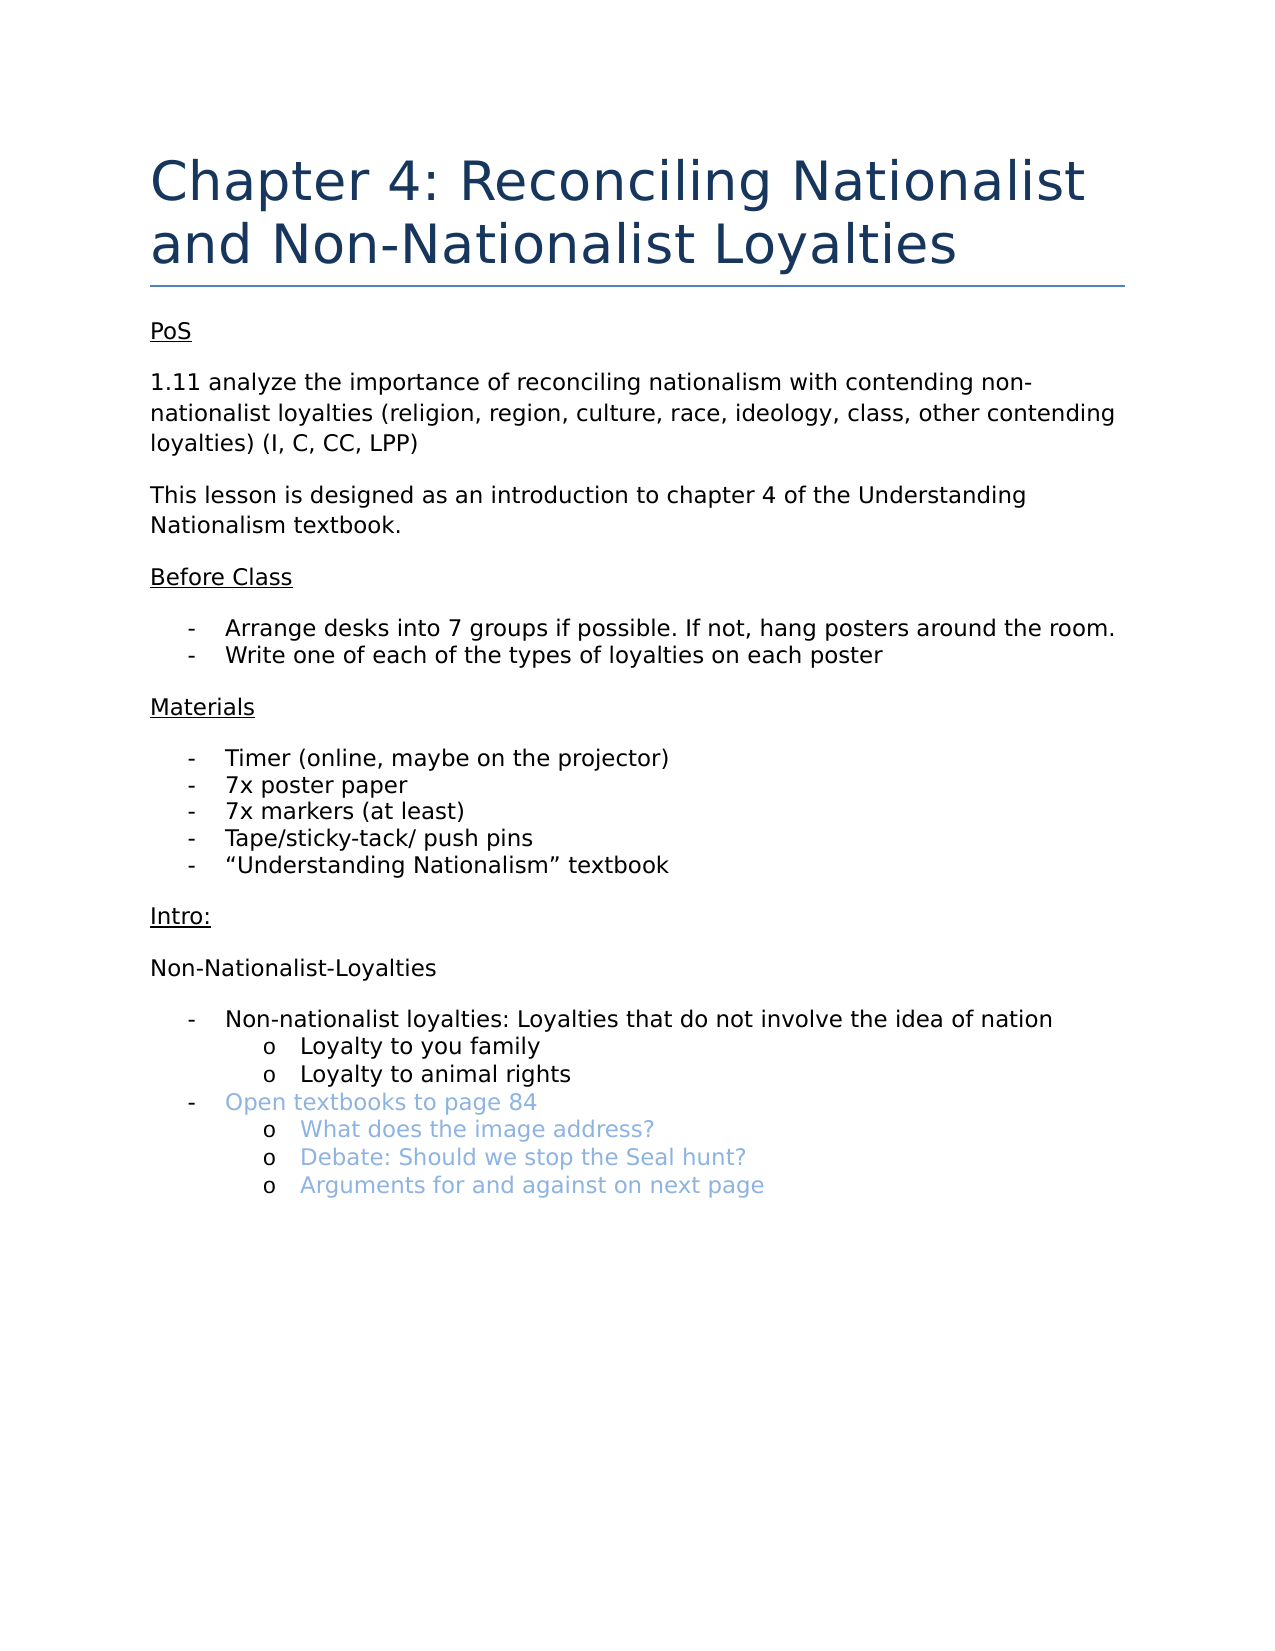 Social 20 2  intro to reconciling nationalist and non nationalist loyalties Resource Preview